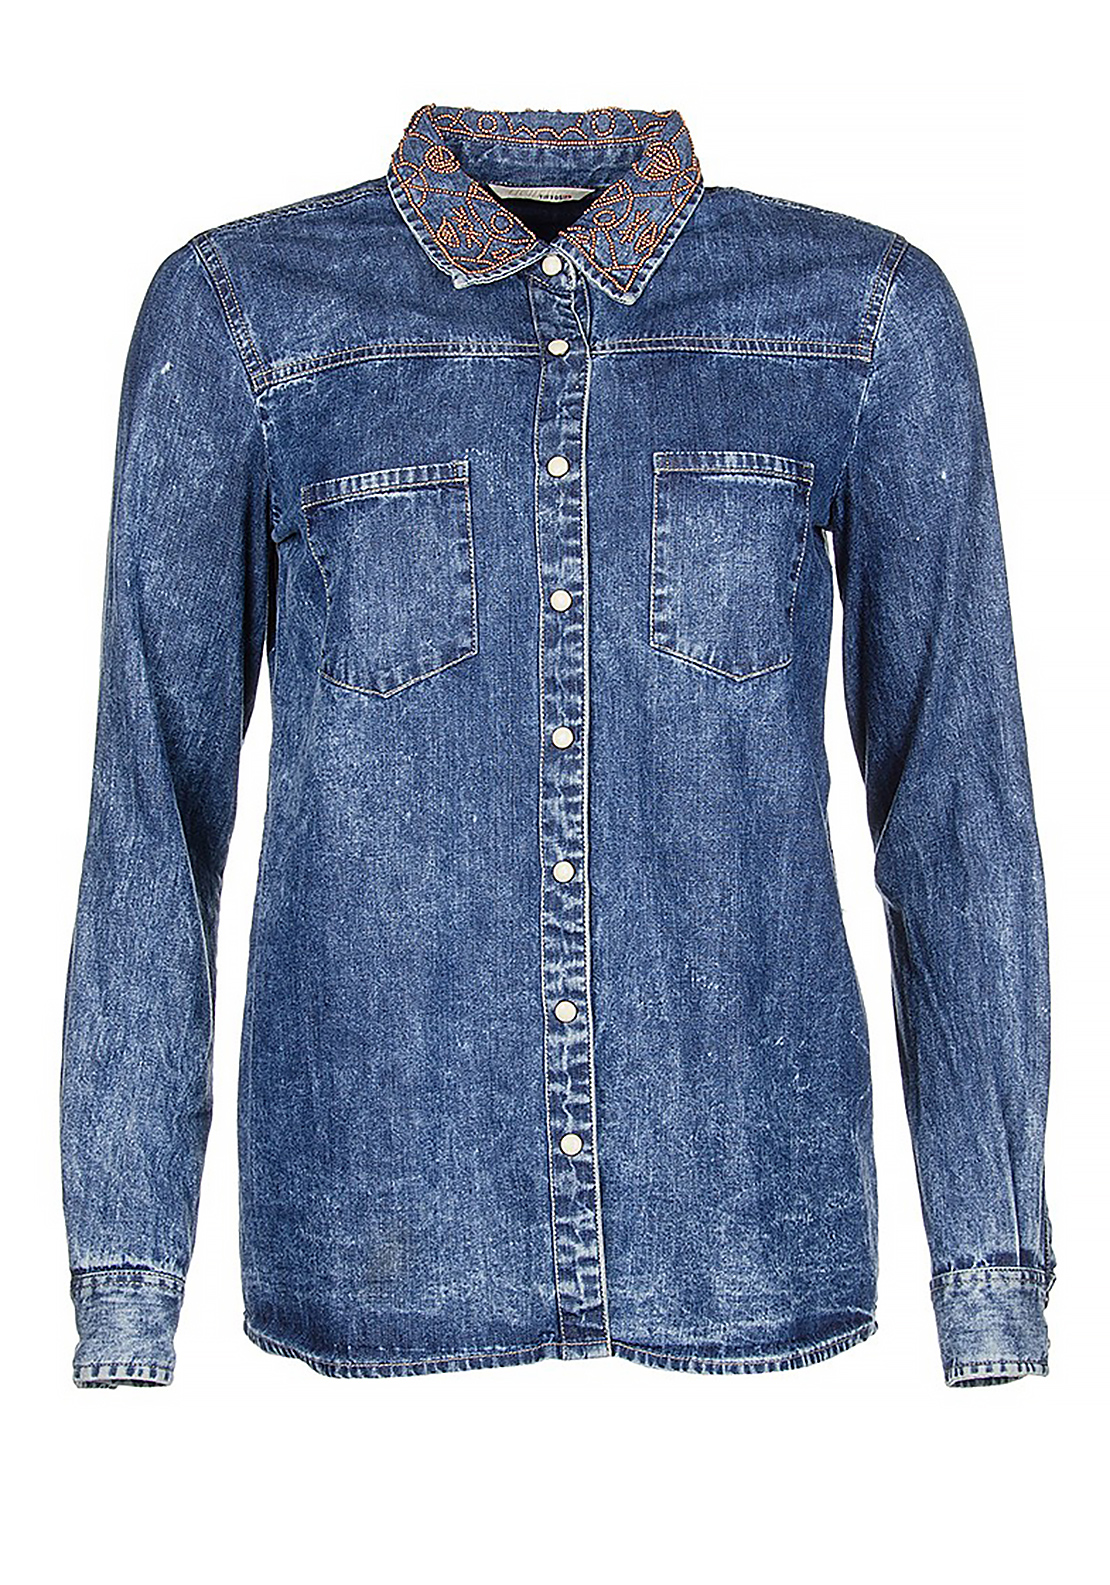 Tiffosi Jenna Bead Embellished Denim Shirt, Blue